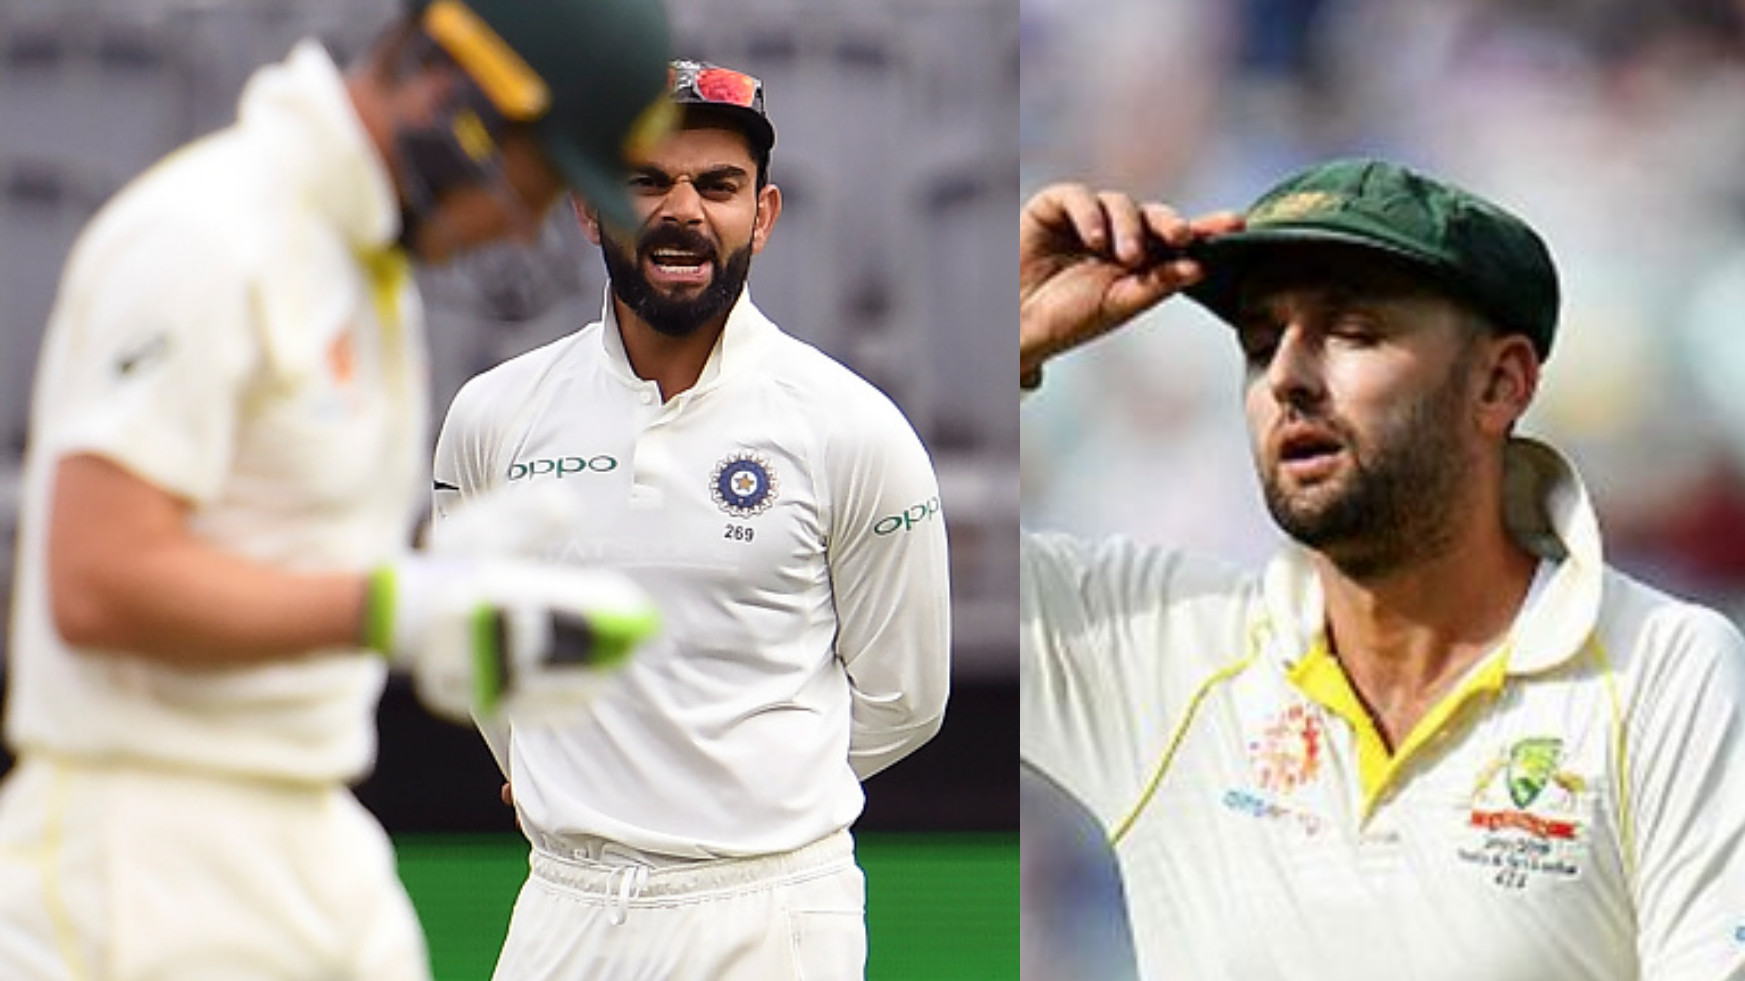 AUS v IND 2018-19: WATCH – Virat Kohli and Tim Paine indulge in war of words; Lyon comments on Kohli's conduct